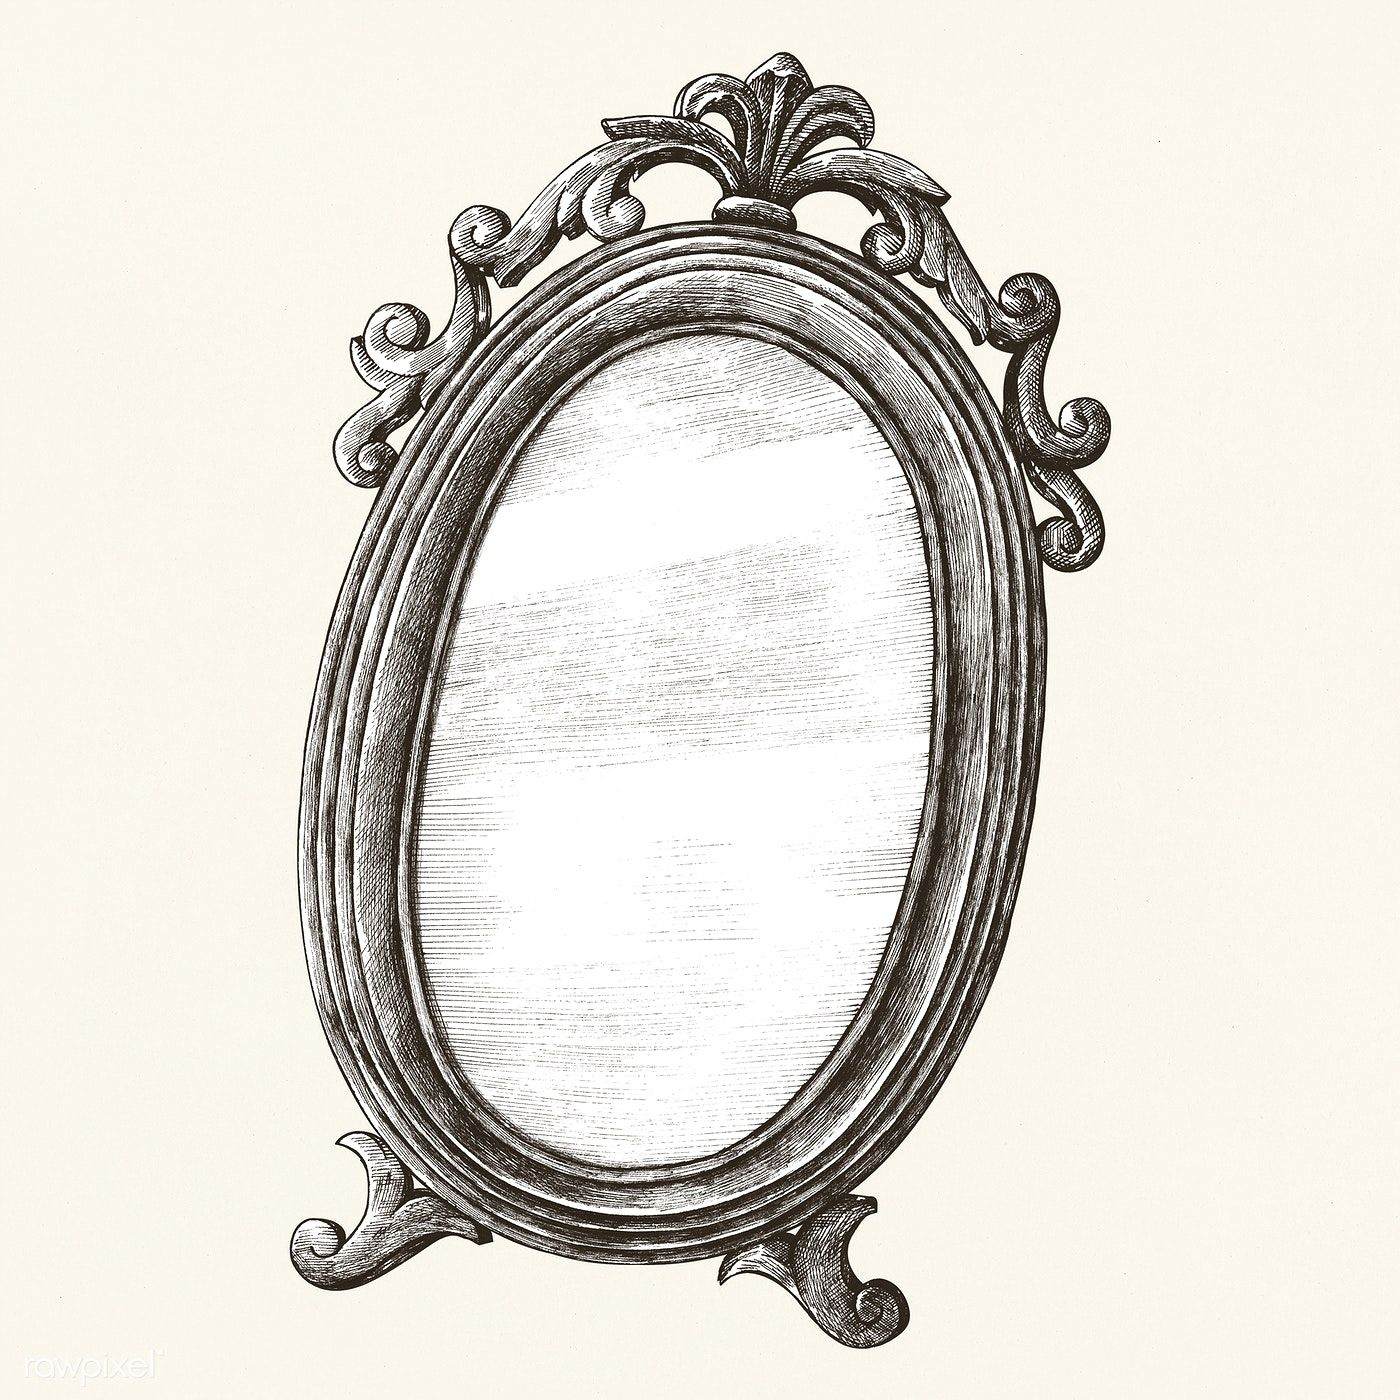 Download Premium Illustration Of Hand Drawn Mirror Isolated On Background How To Draw Hands Mirror Drawings Mirror Illustration